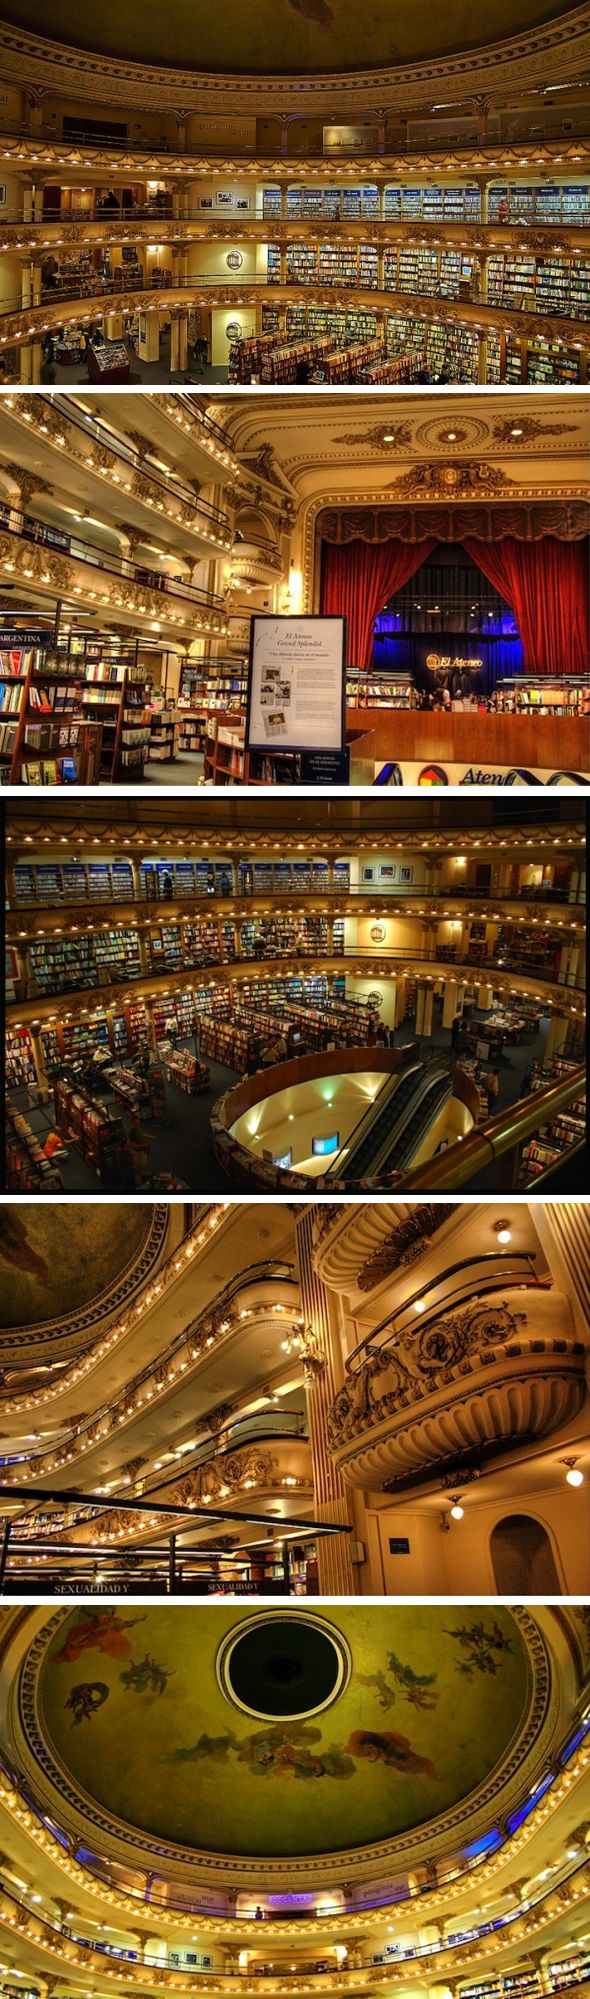 Buenos Aires theater-turned-library